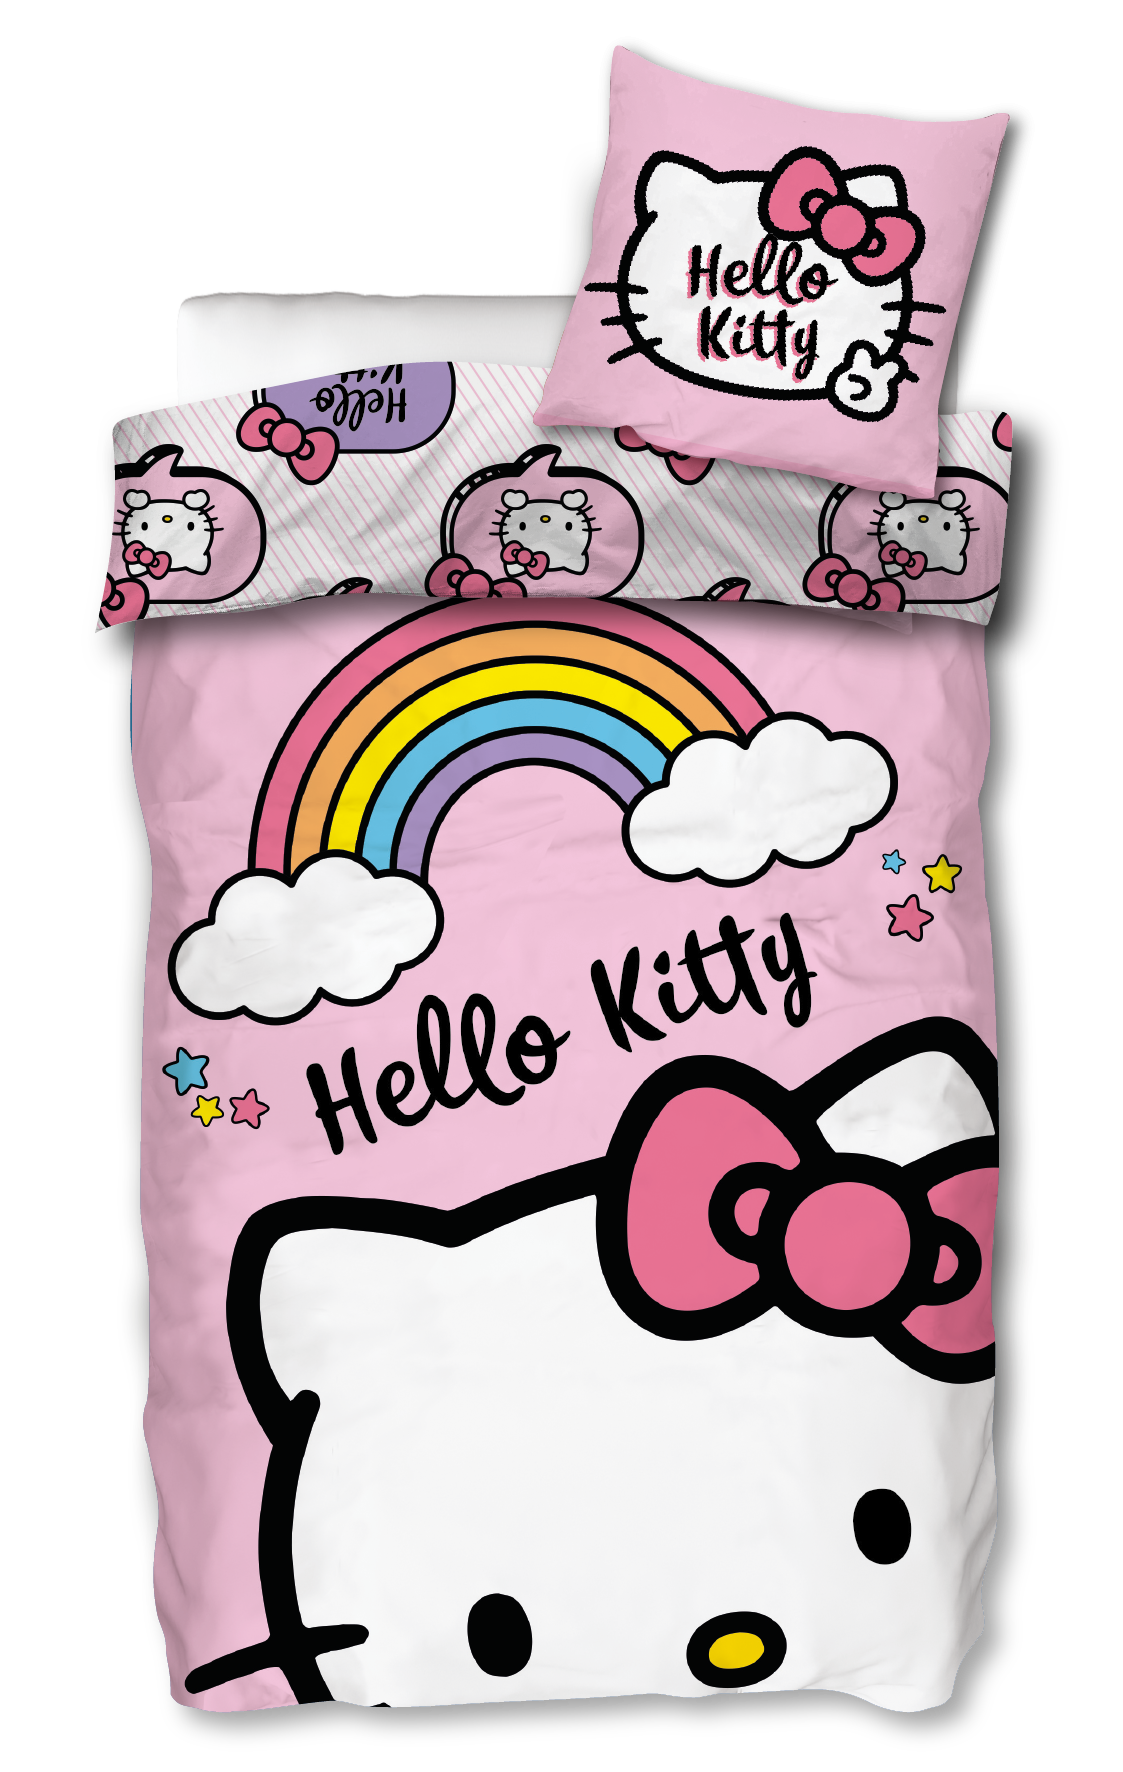 Bed Linen - Adult Size 140 x 200 cm - Hello Kitty (HK005)